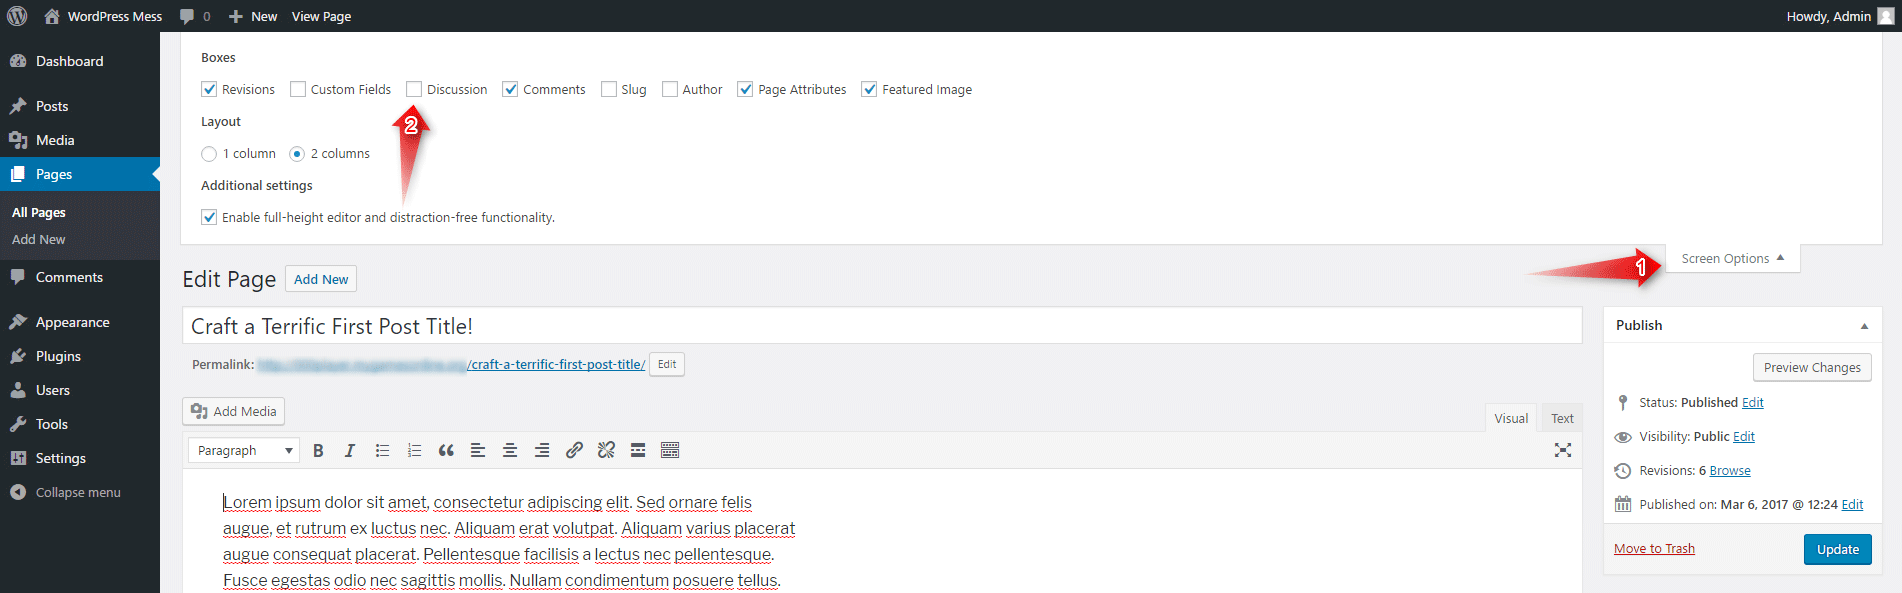 WordPress turn off all comments